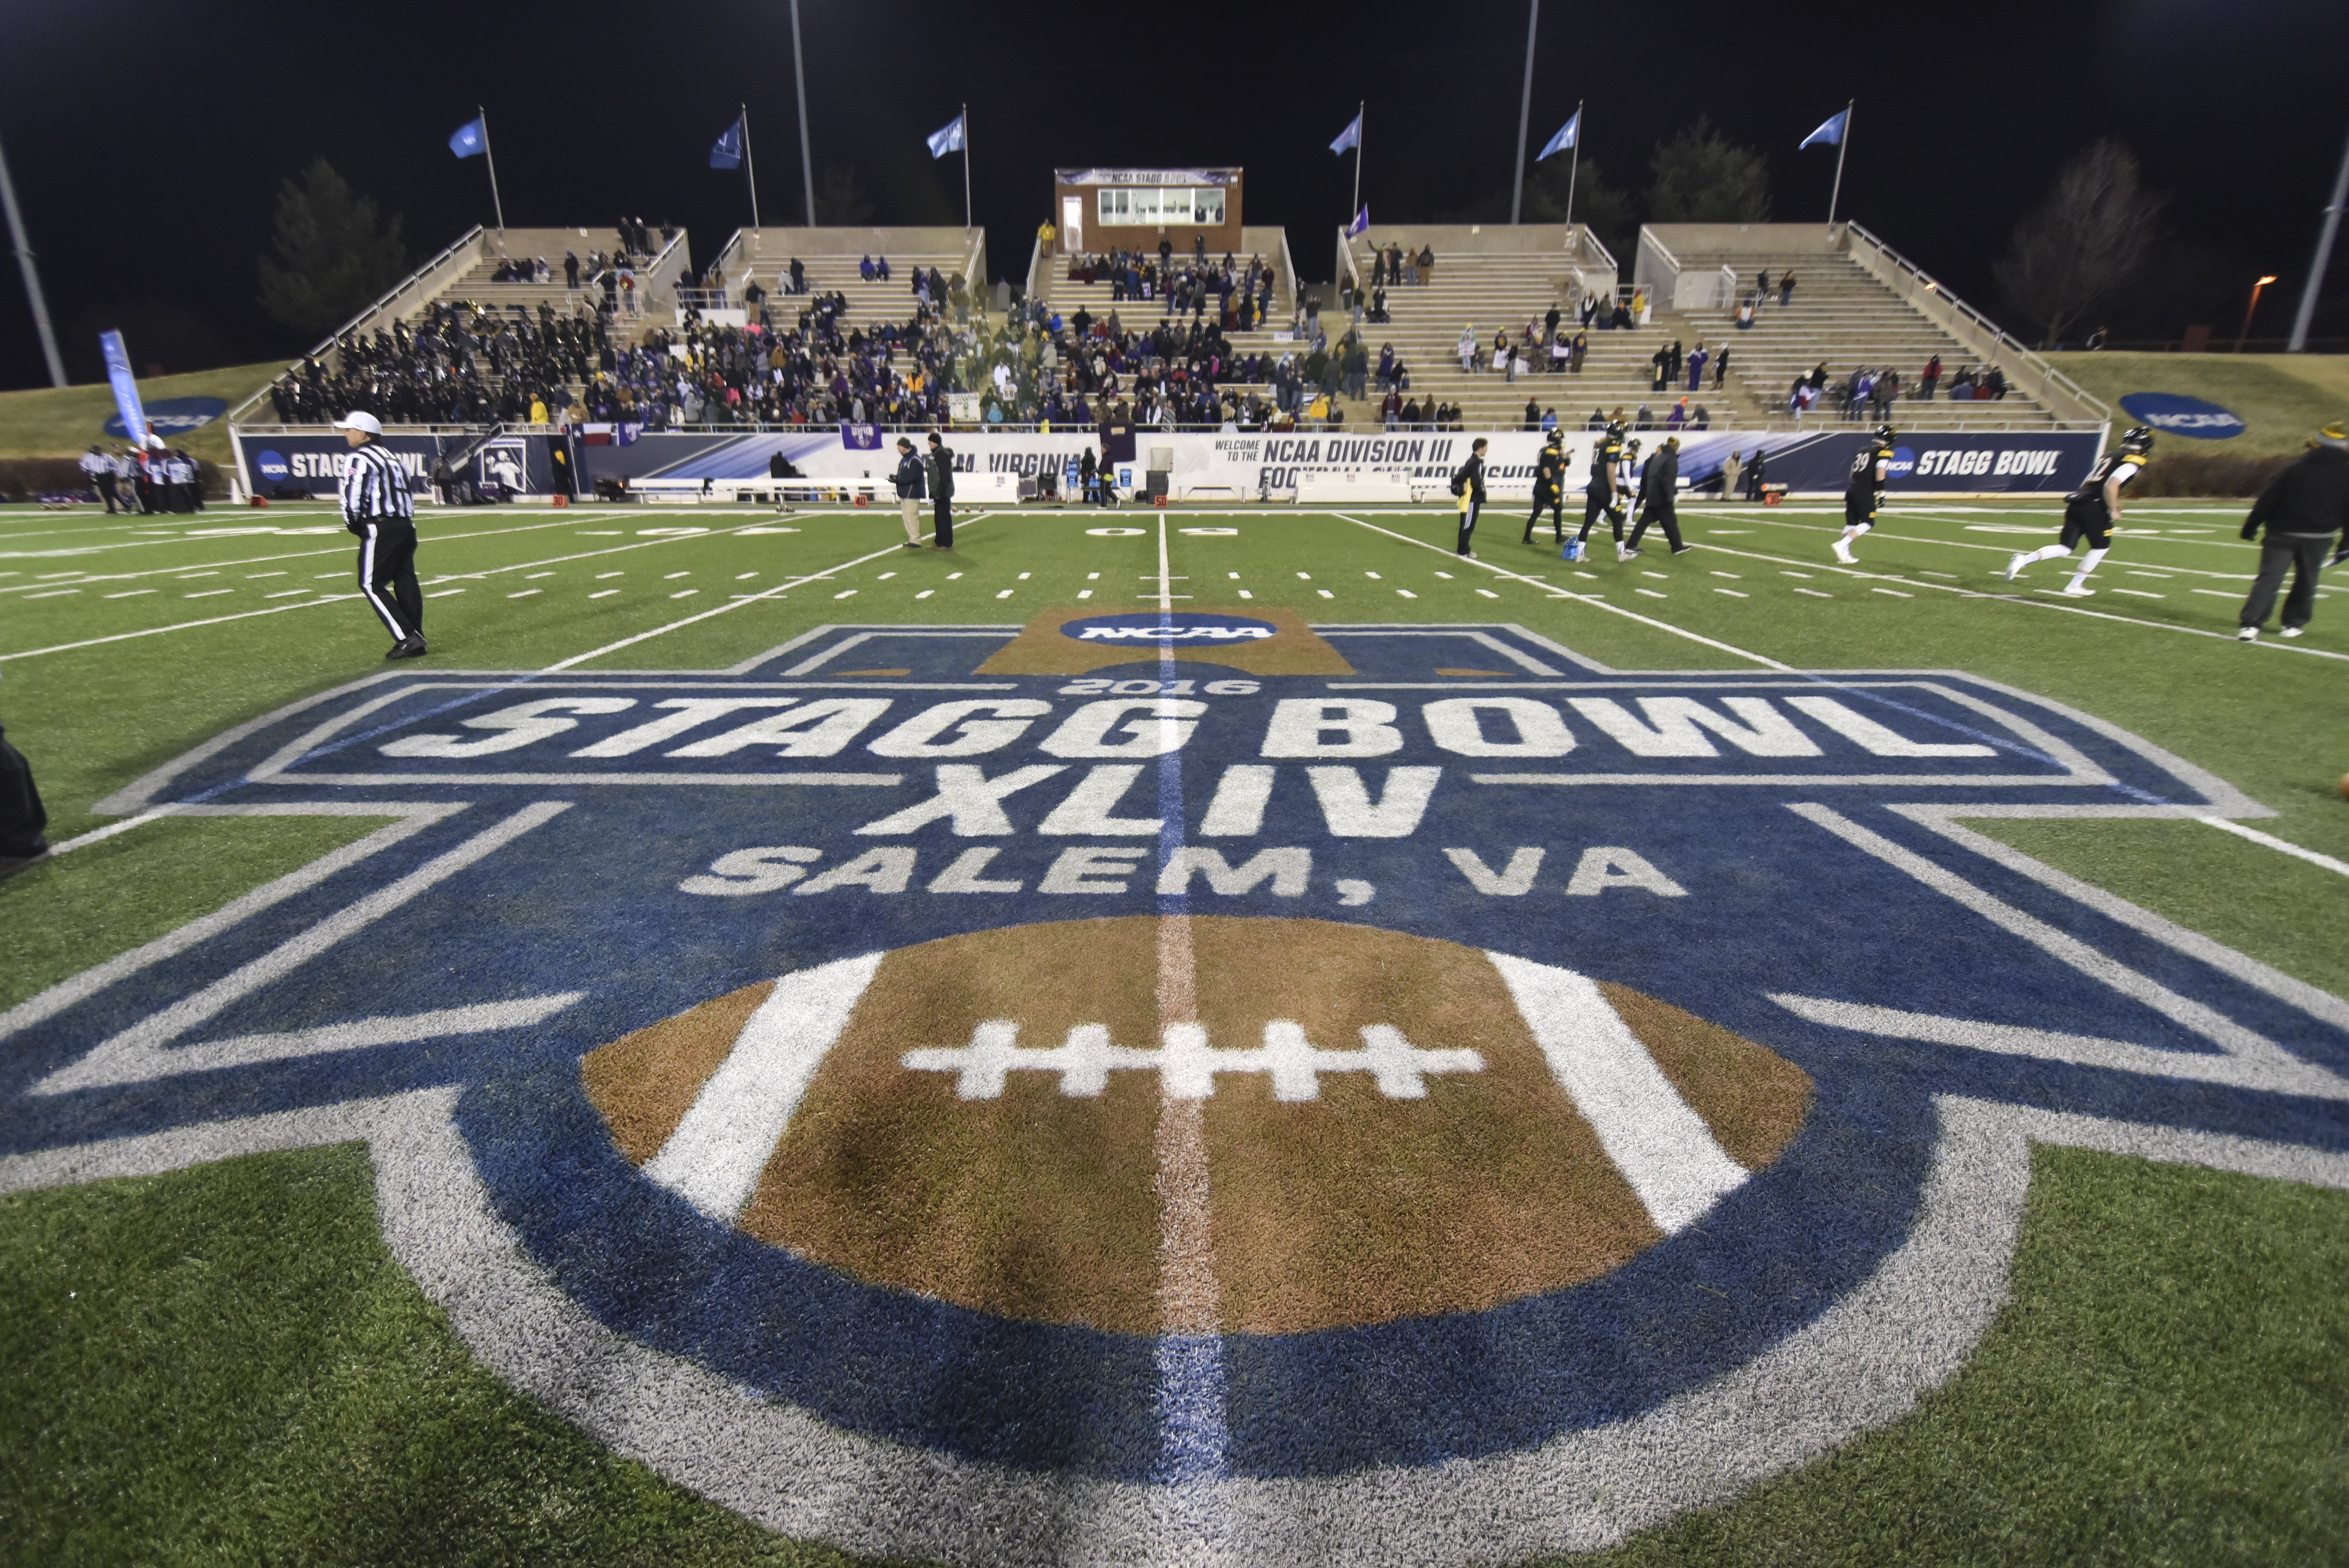 The 50-yard line is viewed prior to the NCAA Division III football championship game between Mary Hardin-Baylor and Wisconsin-Oshkosh at Salem Stadium in Salem, Va., Friday, Dec. 16, 2016. (AP Photo/Michael Shroyer)